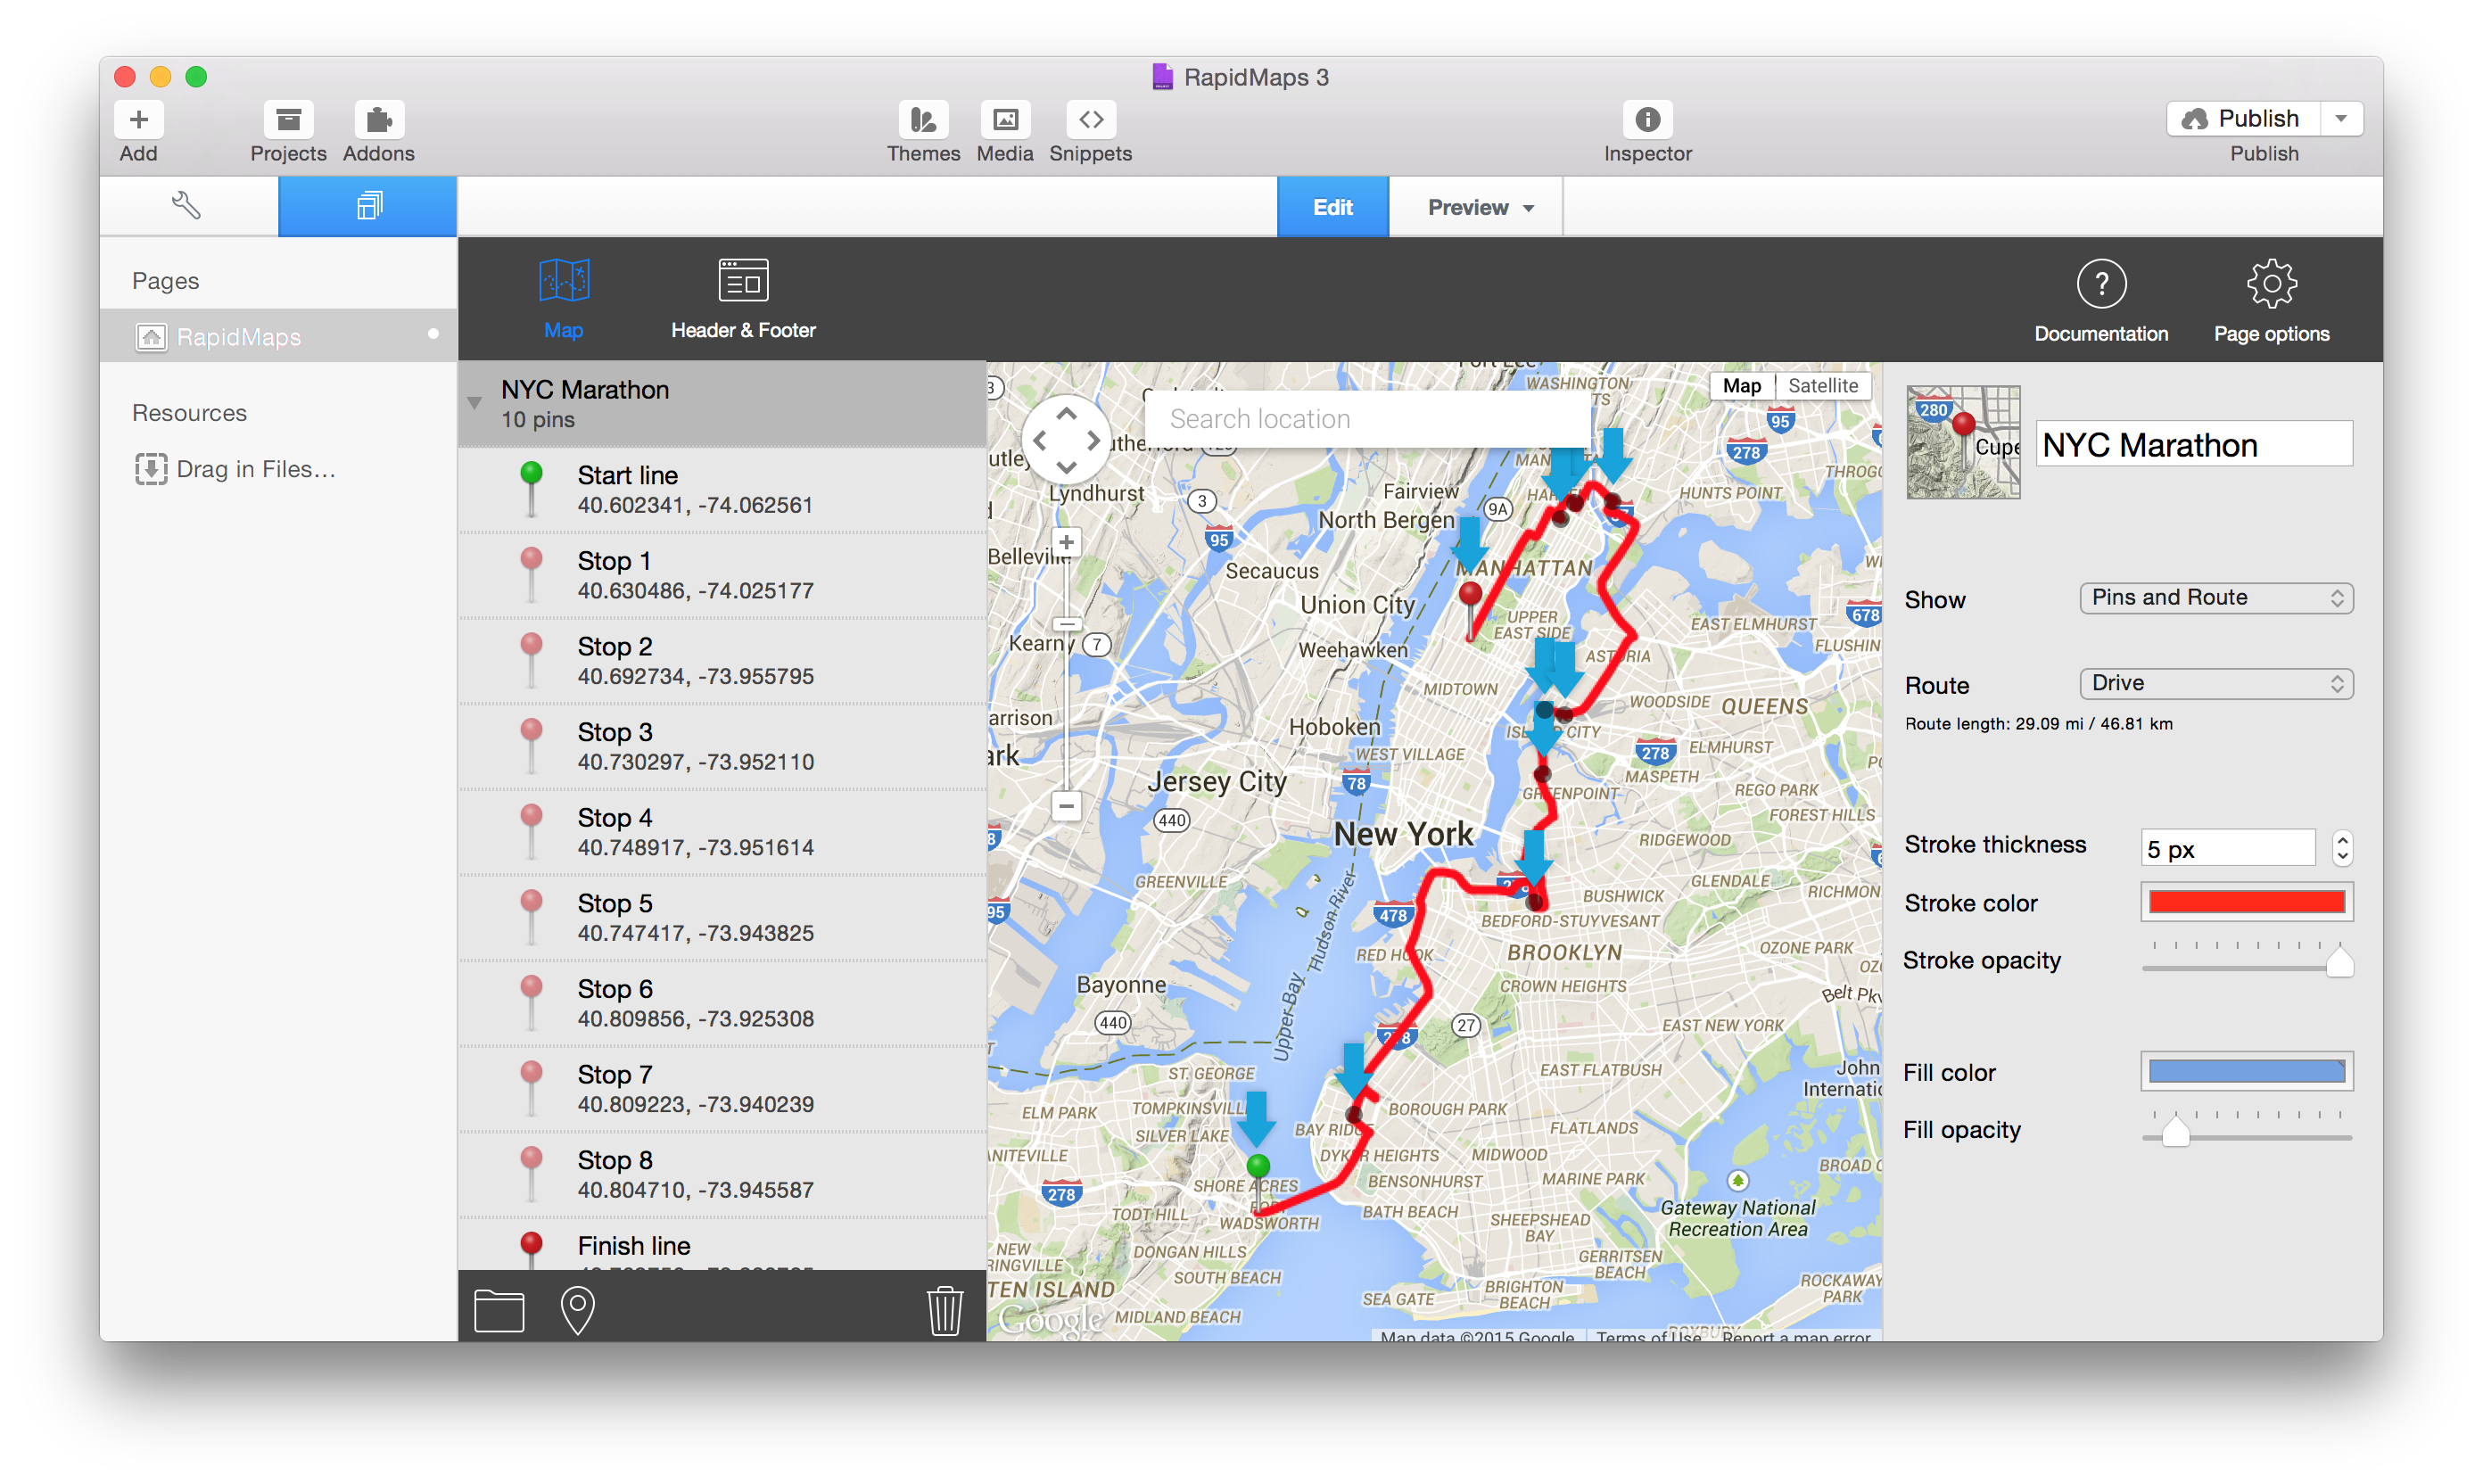 RapidMaps 3 Project - NYC Marathon